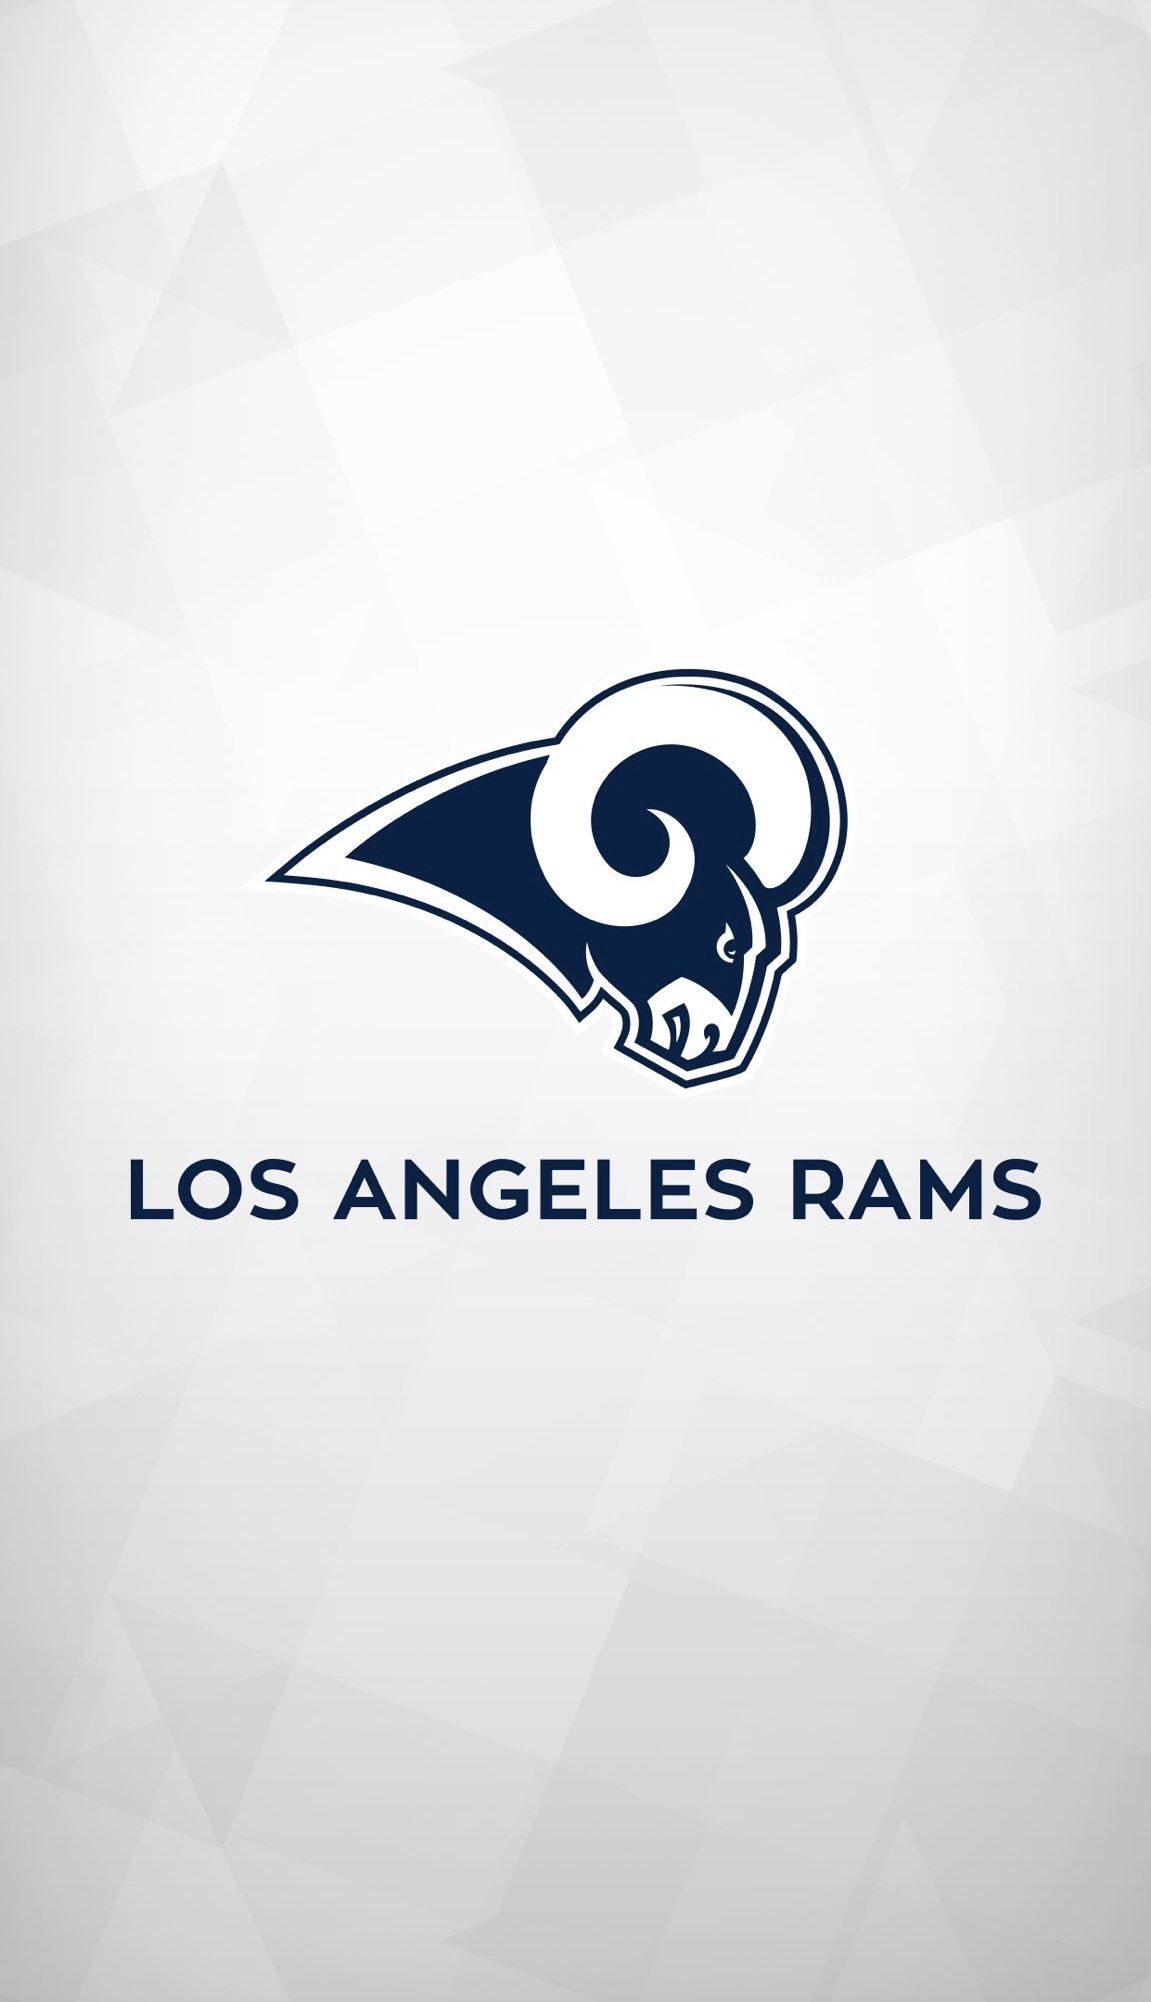 Los Angeles Rams Los Angeles Rams Nfl Los Angeles Nfl Rams